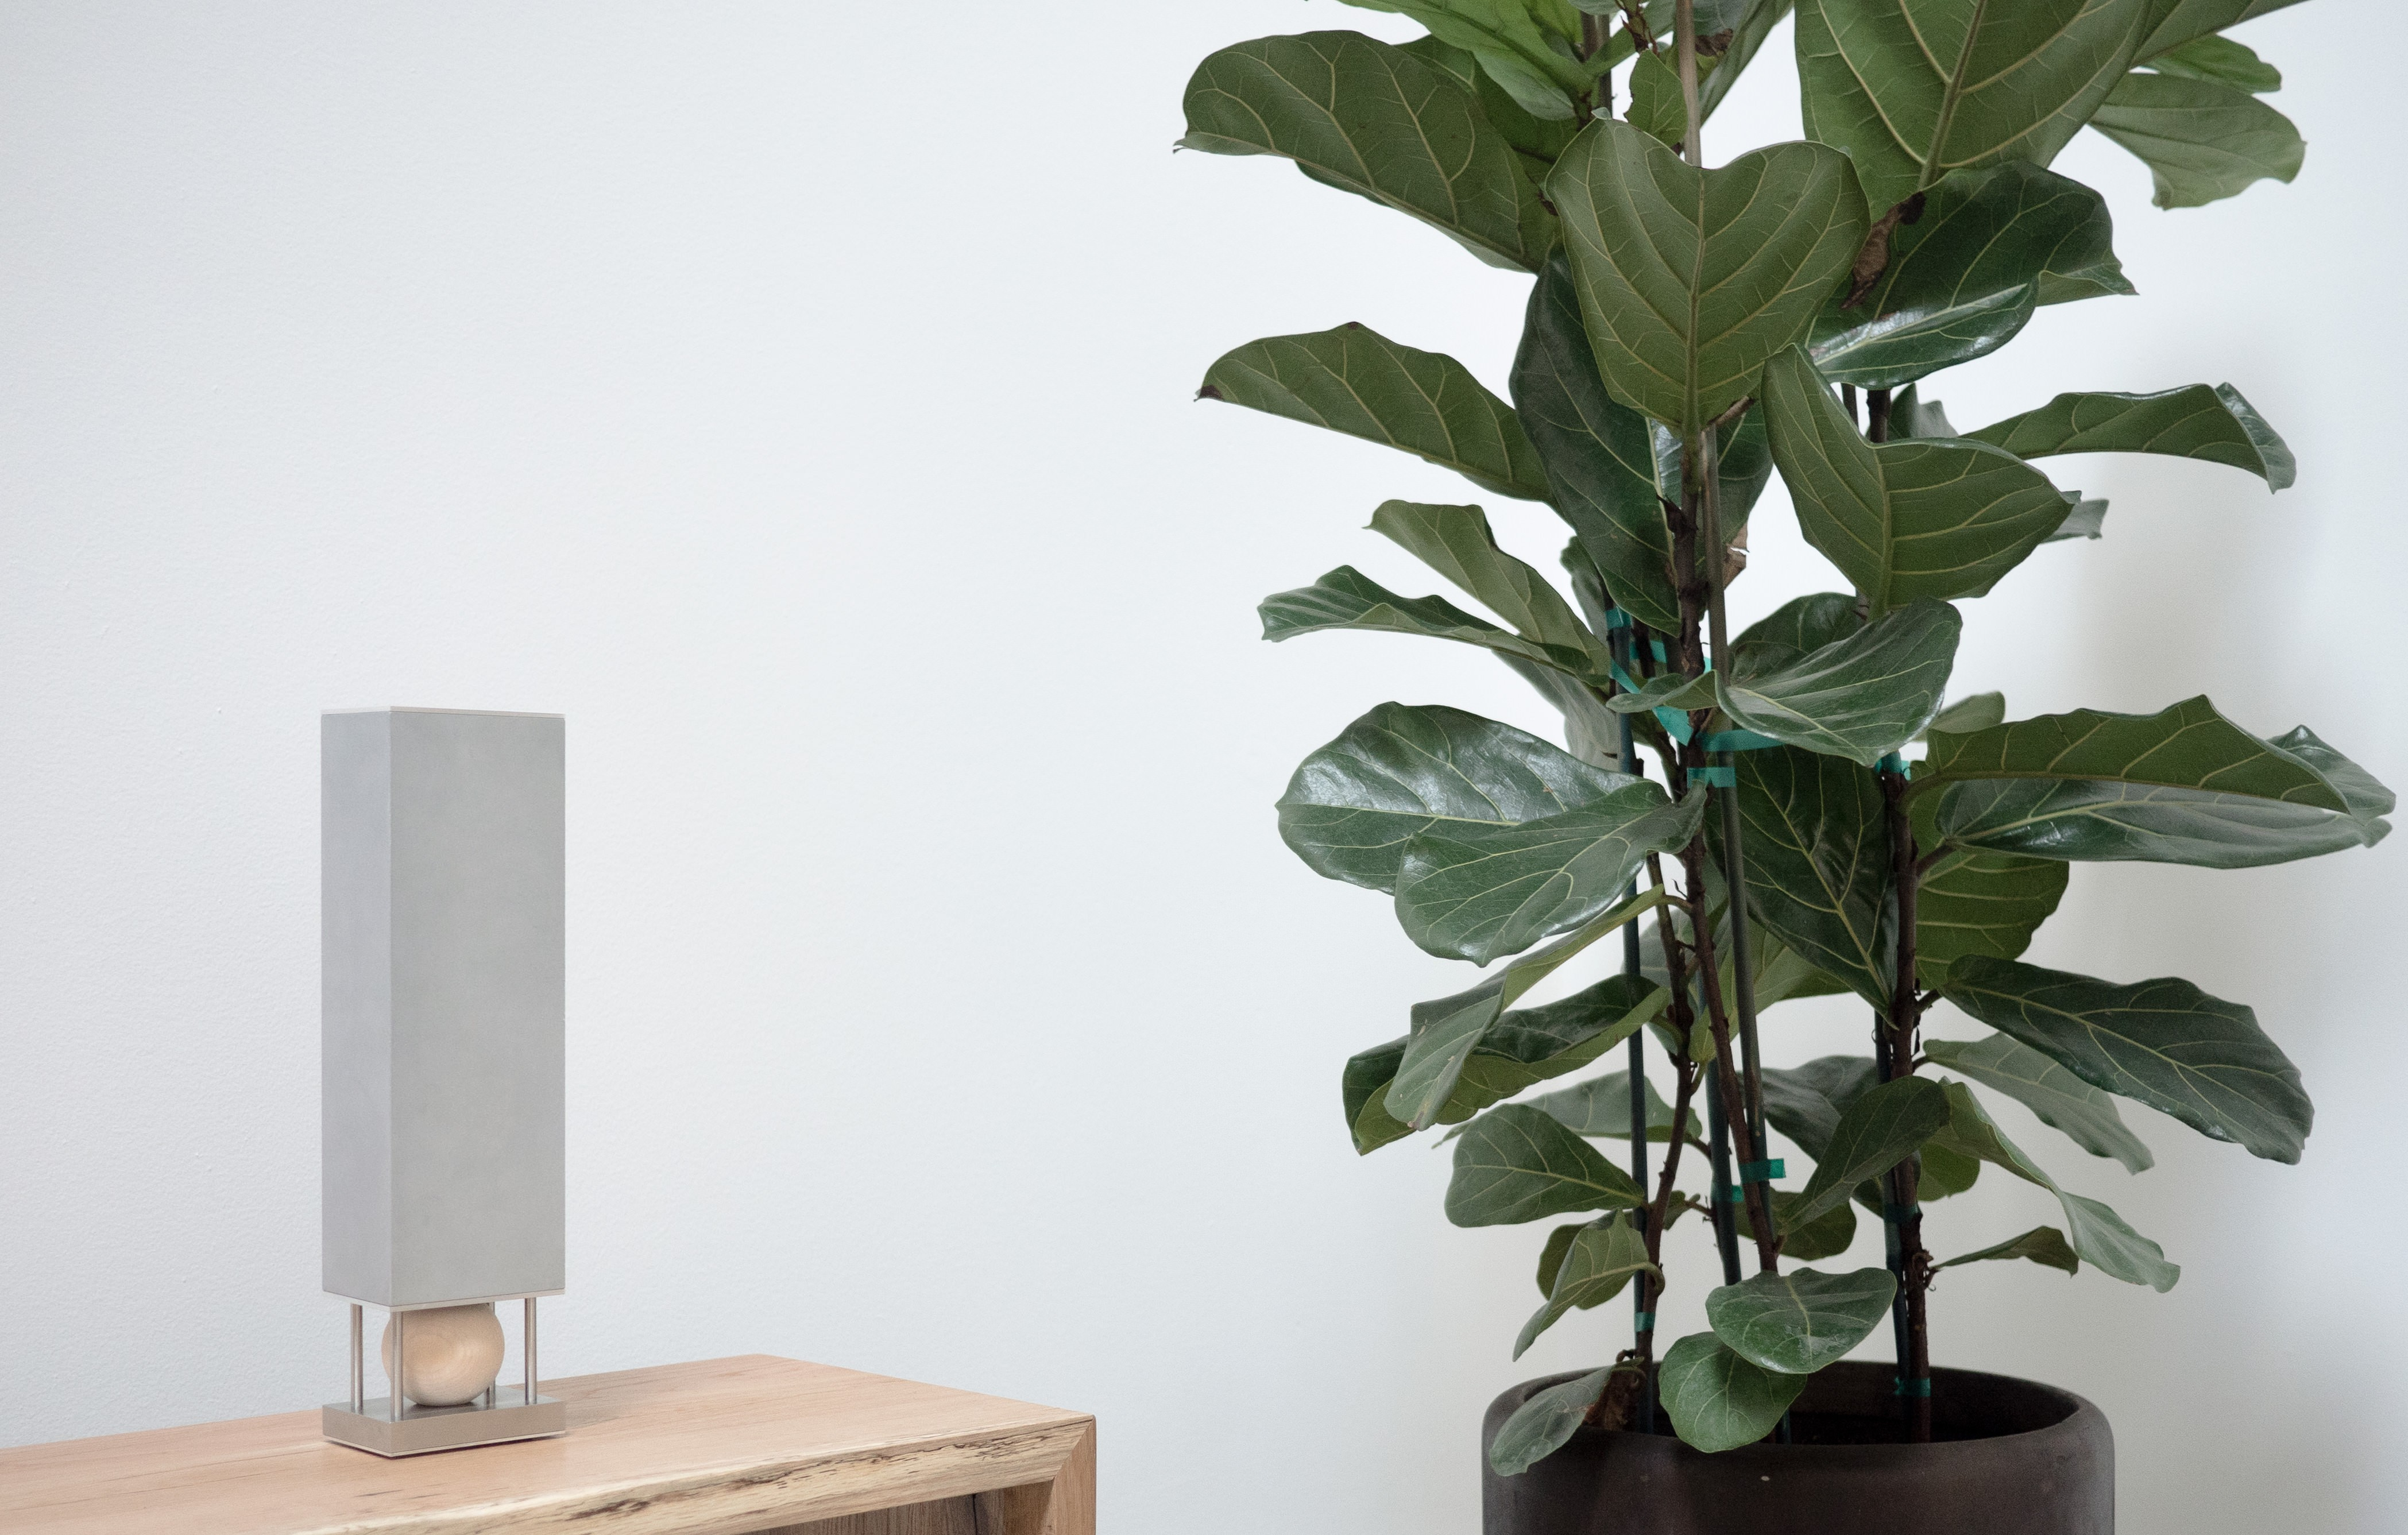 Steel Speaker par Joey Roth  Journal du Design